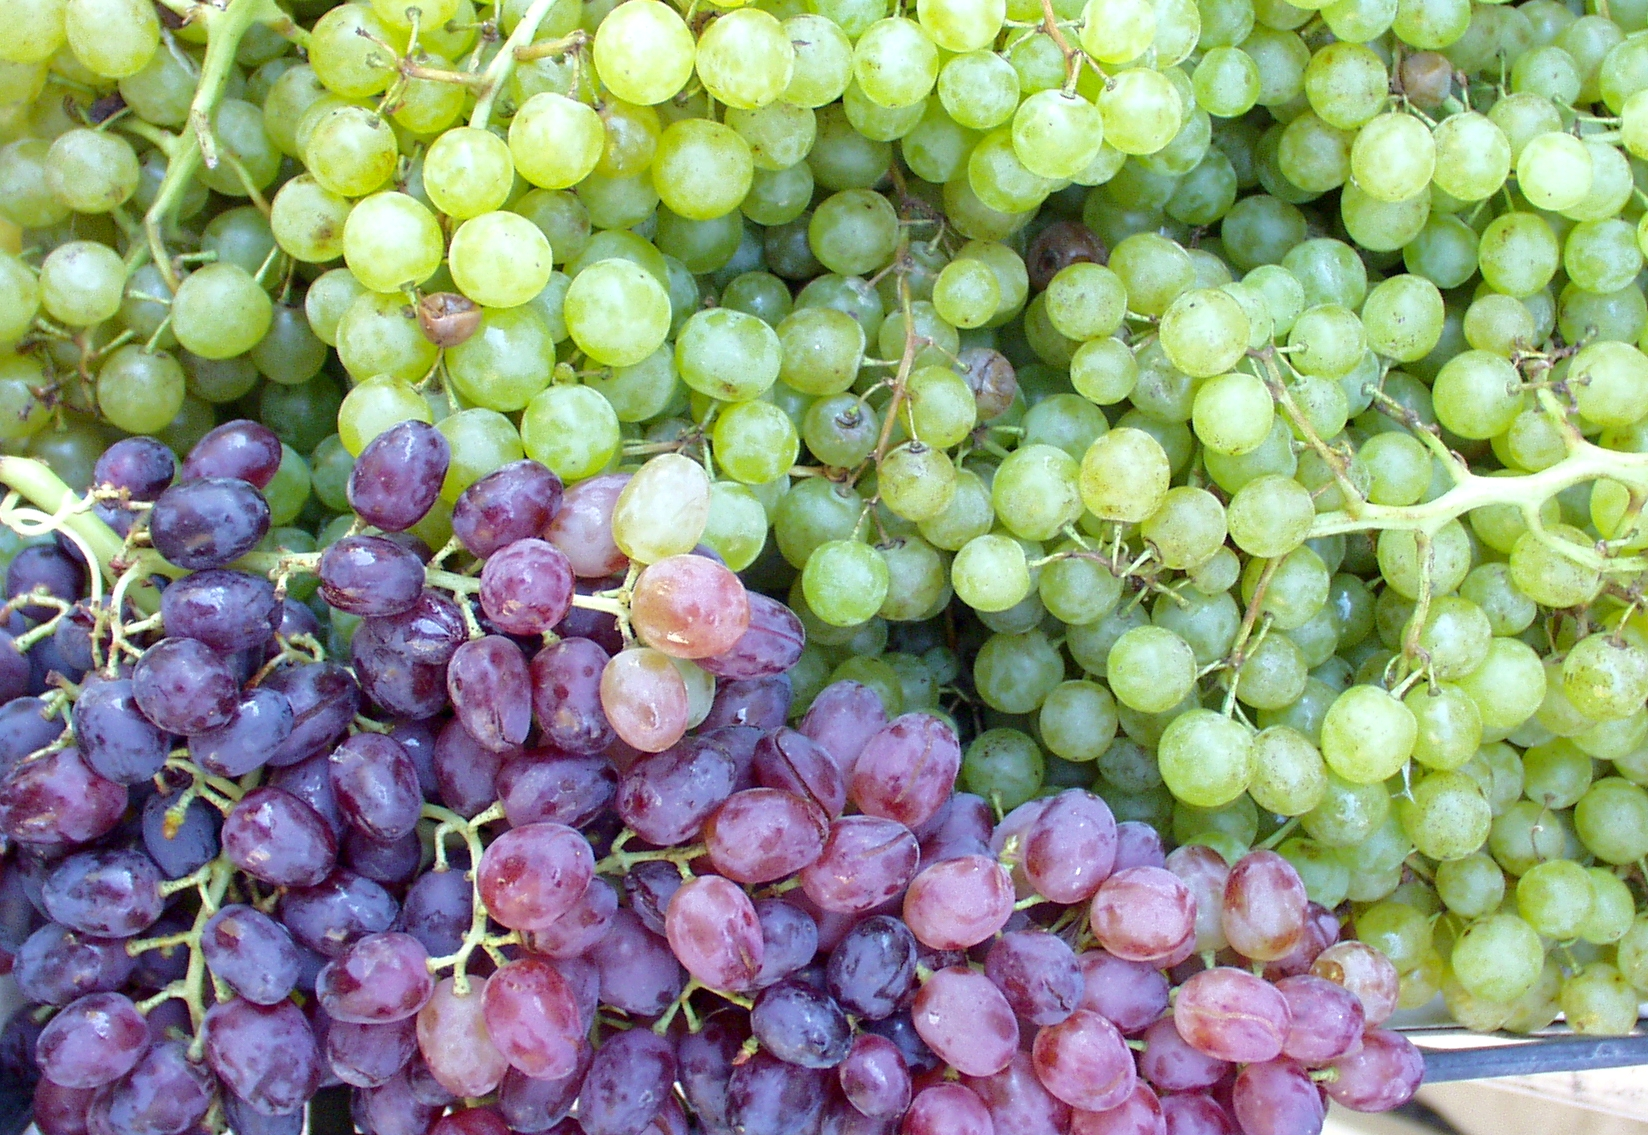 Table grapes from Magana. Photo copyright 2009 by Zachary D. Lyons.